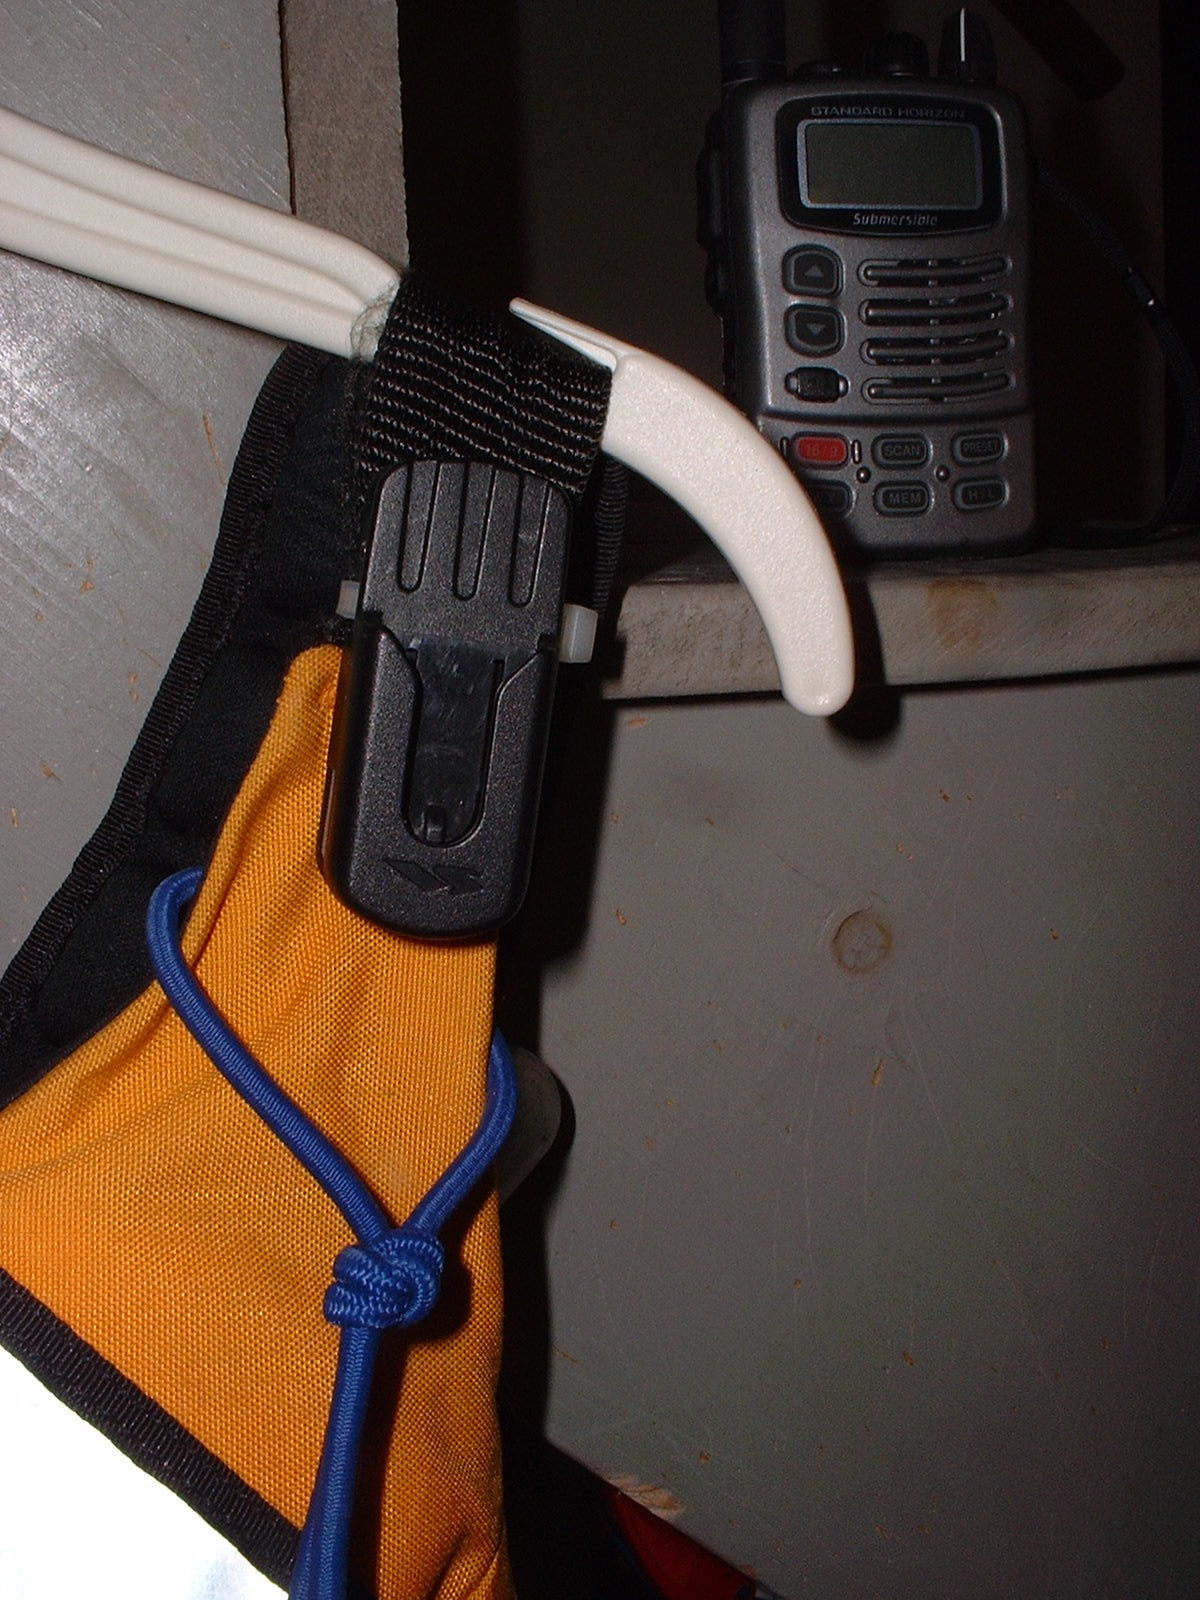 VHF radio belt clip mounted to a PFD shoulder strap